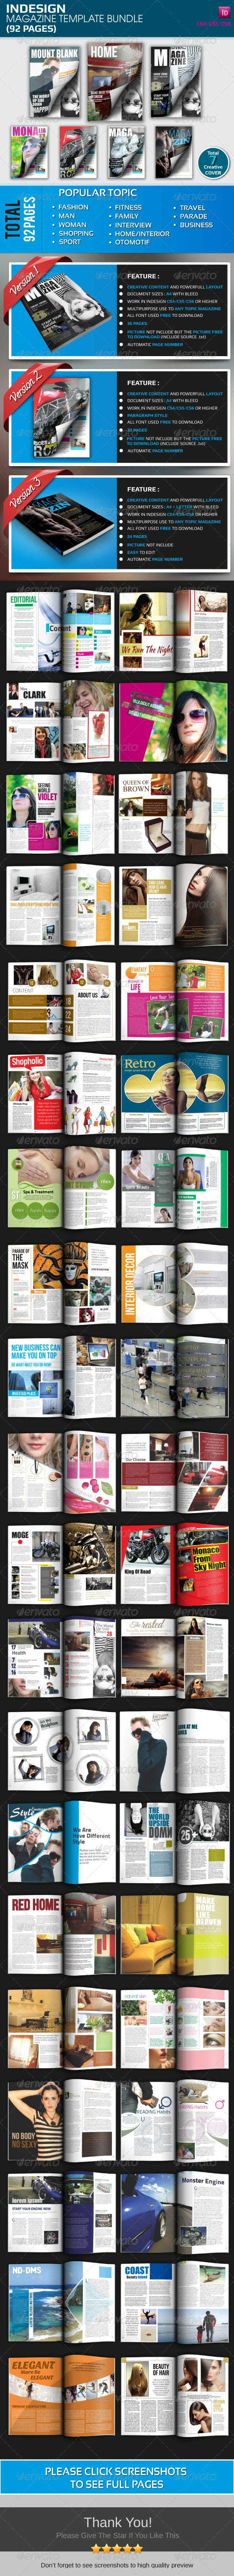 Indesign Magazine Template Bundle (92 Pages) - Magazines Print Templates